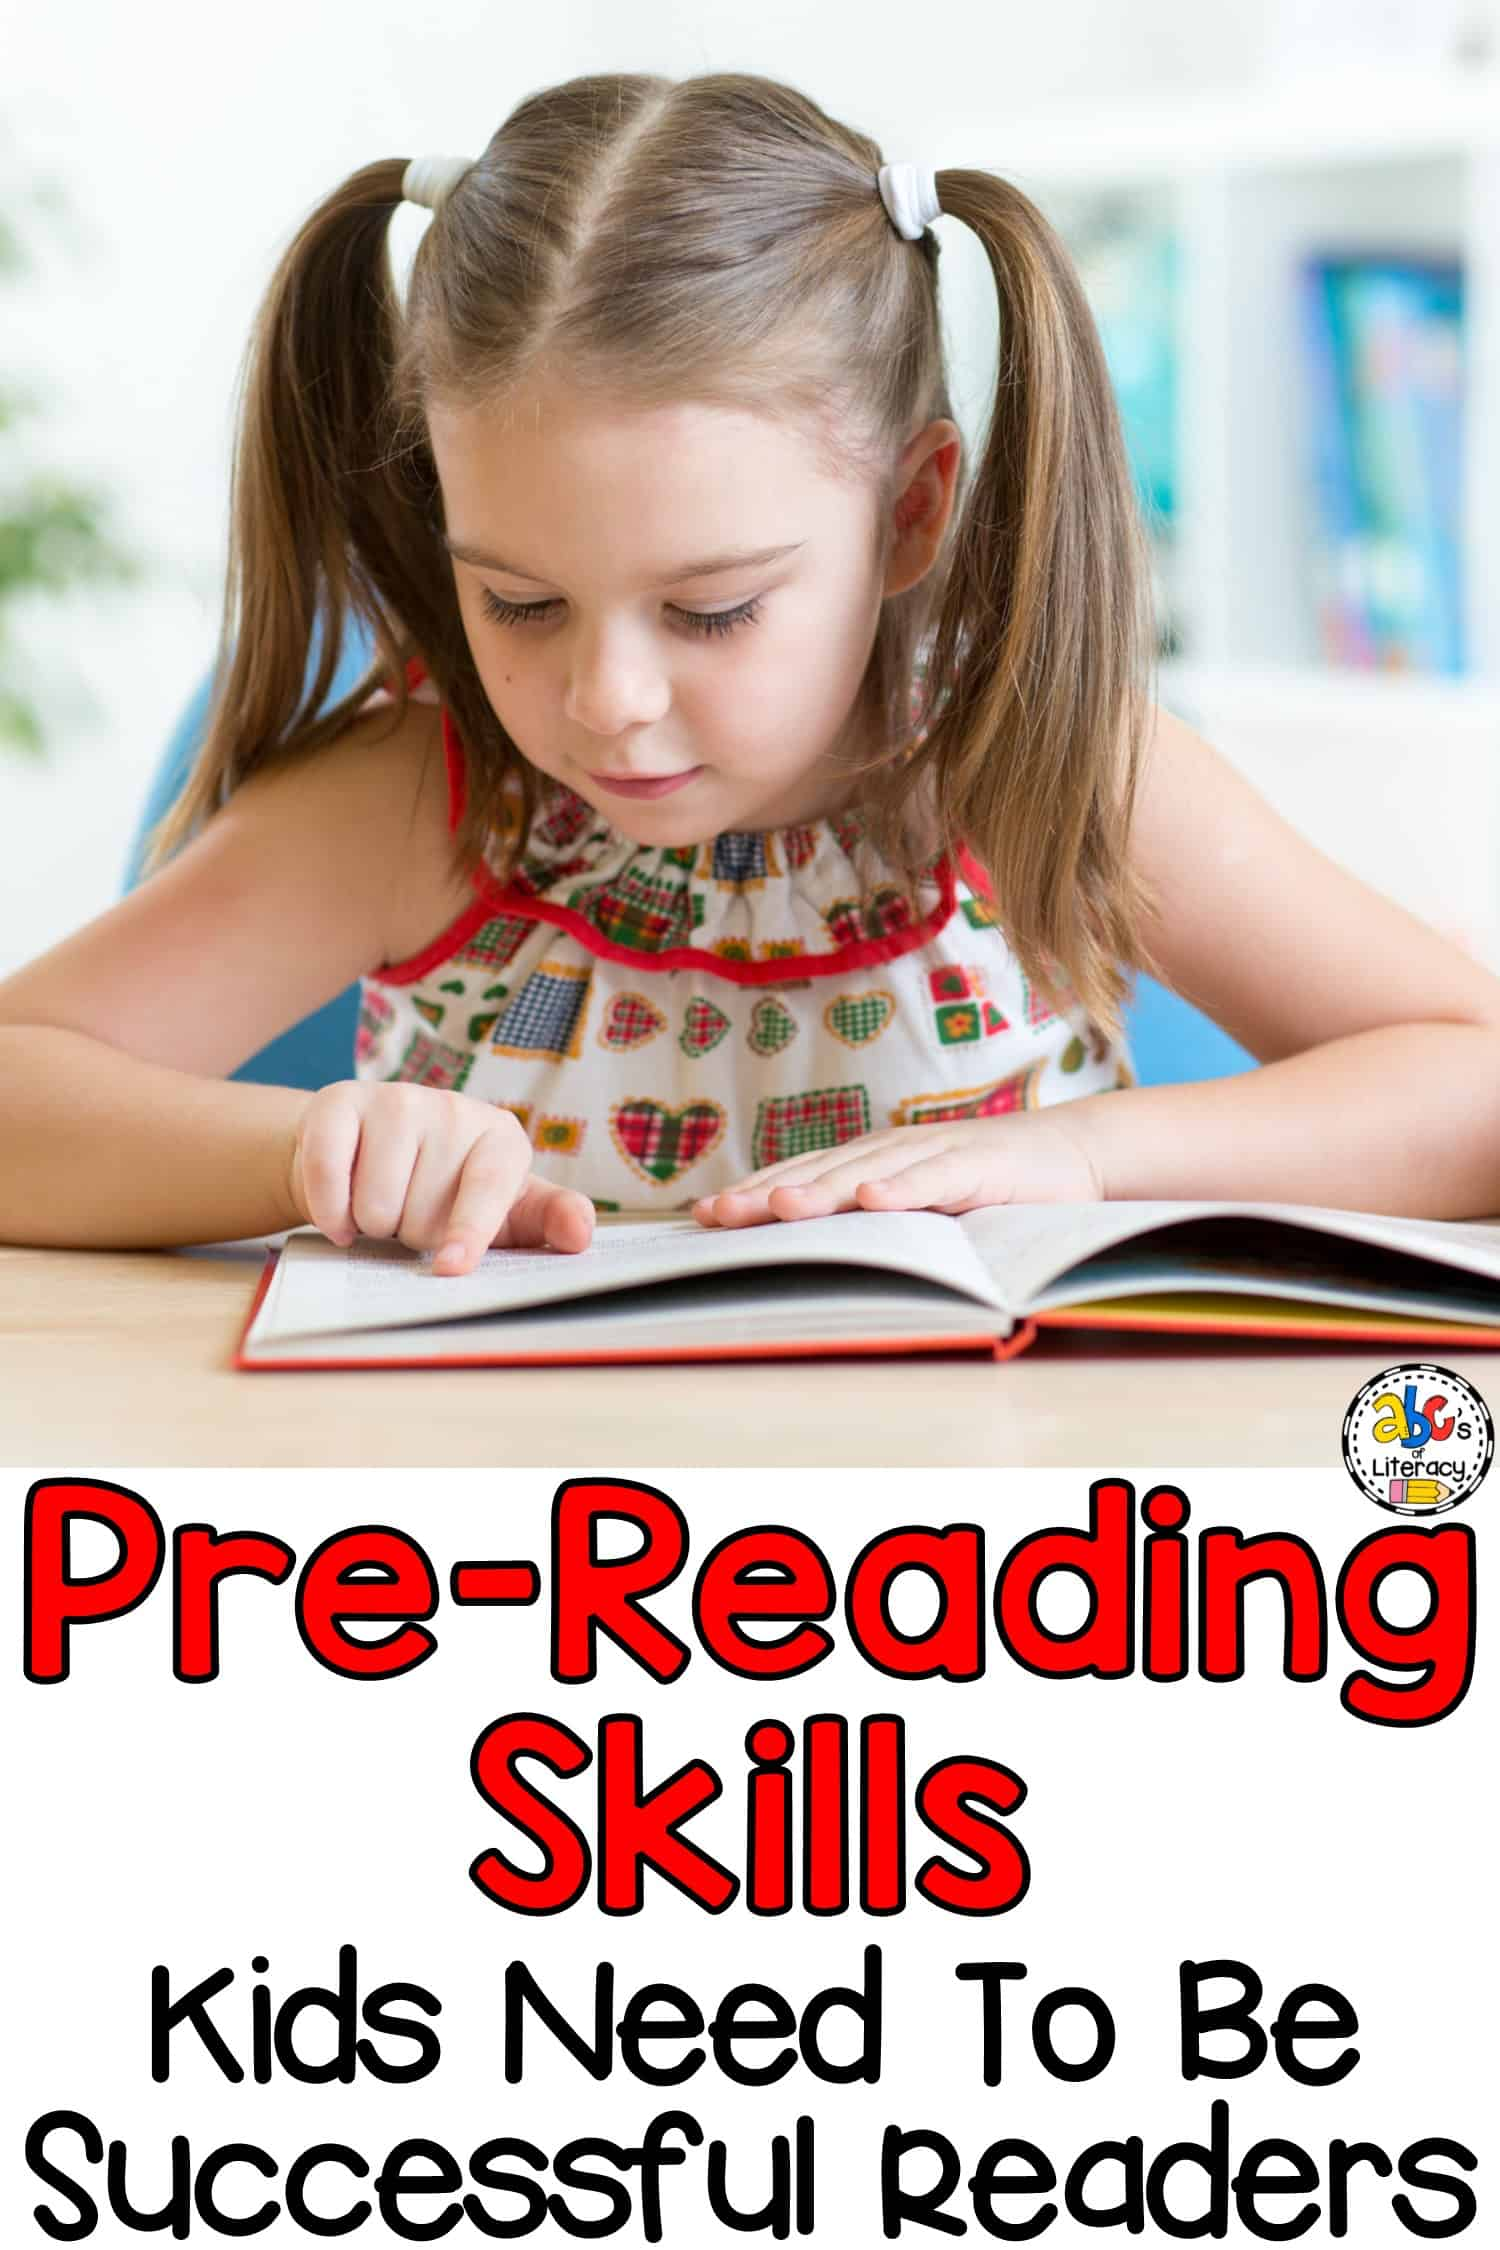 Pre-Reading Skills Kids Need To Be Successful Readers